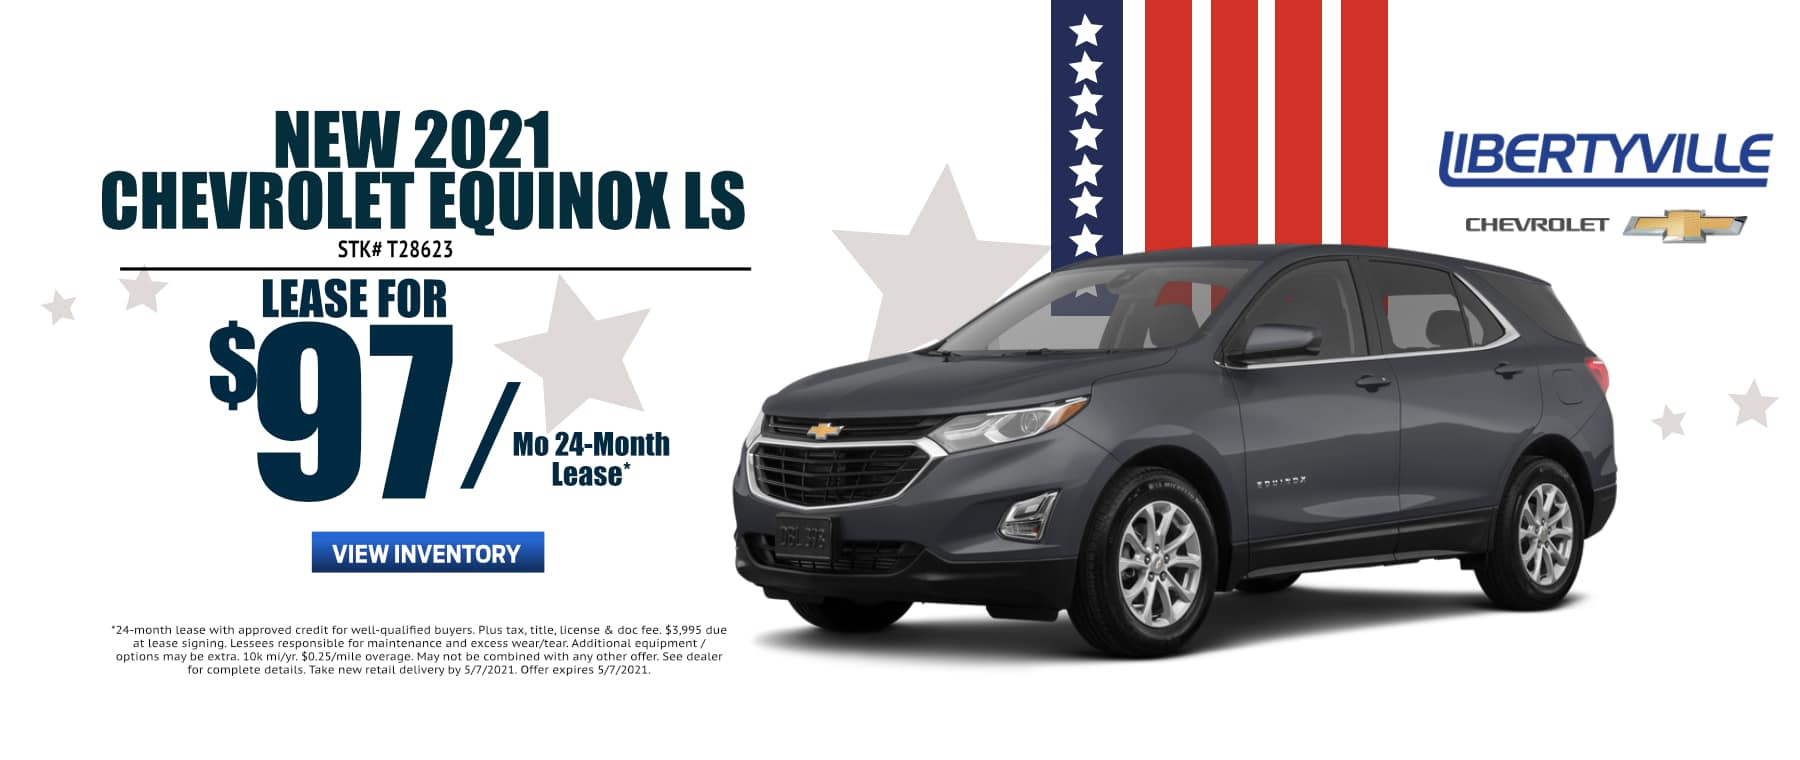 April_2021_Equinox_Lease_Libertyville_Chevrolet_